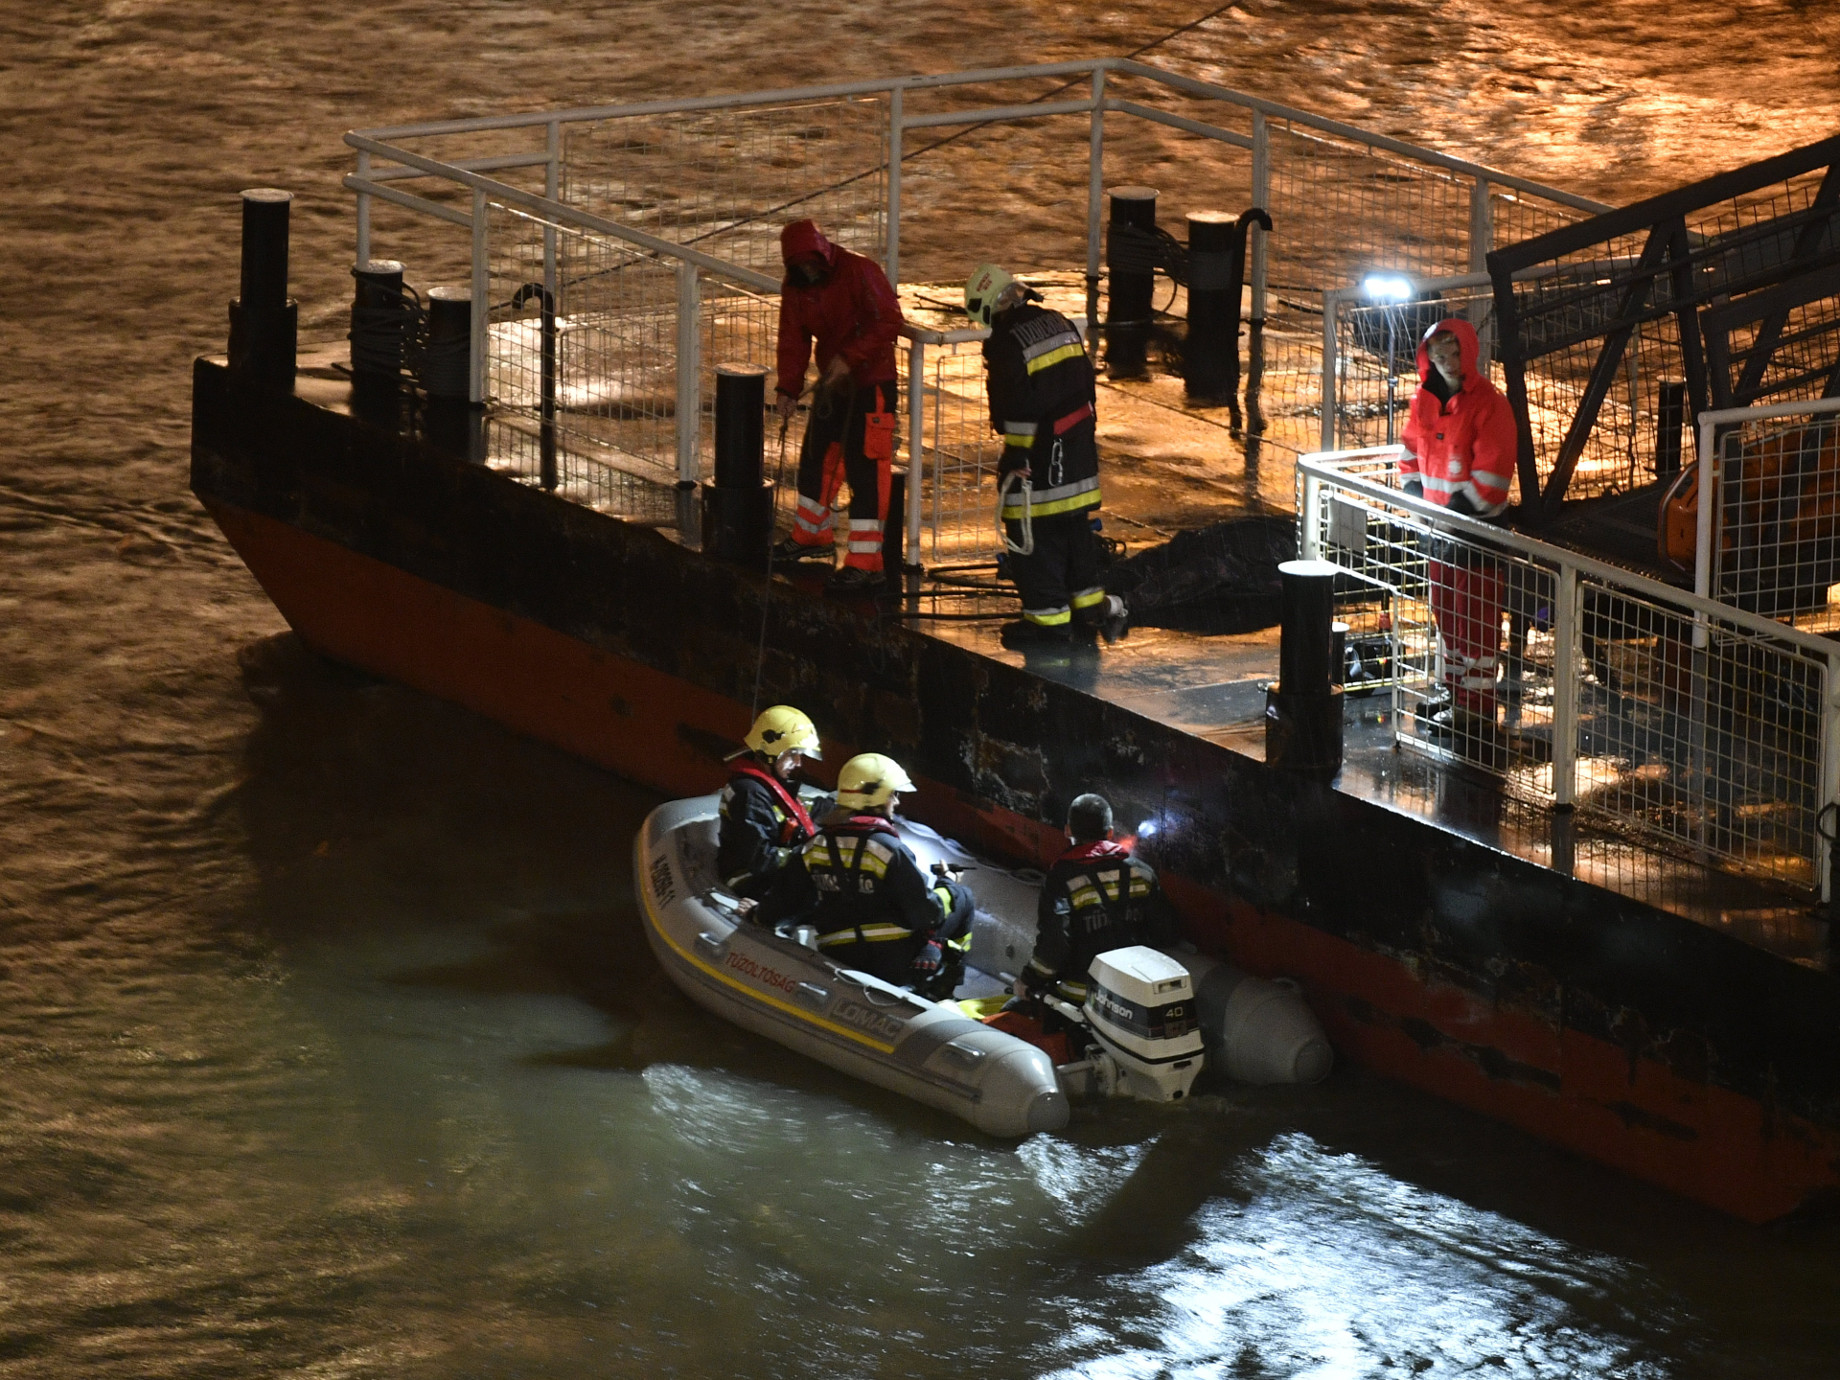 Video: Budapest Boat Tragedy - Divers In Action, Body Found 100km From Accident